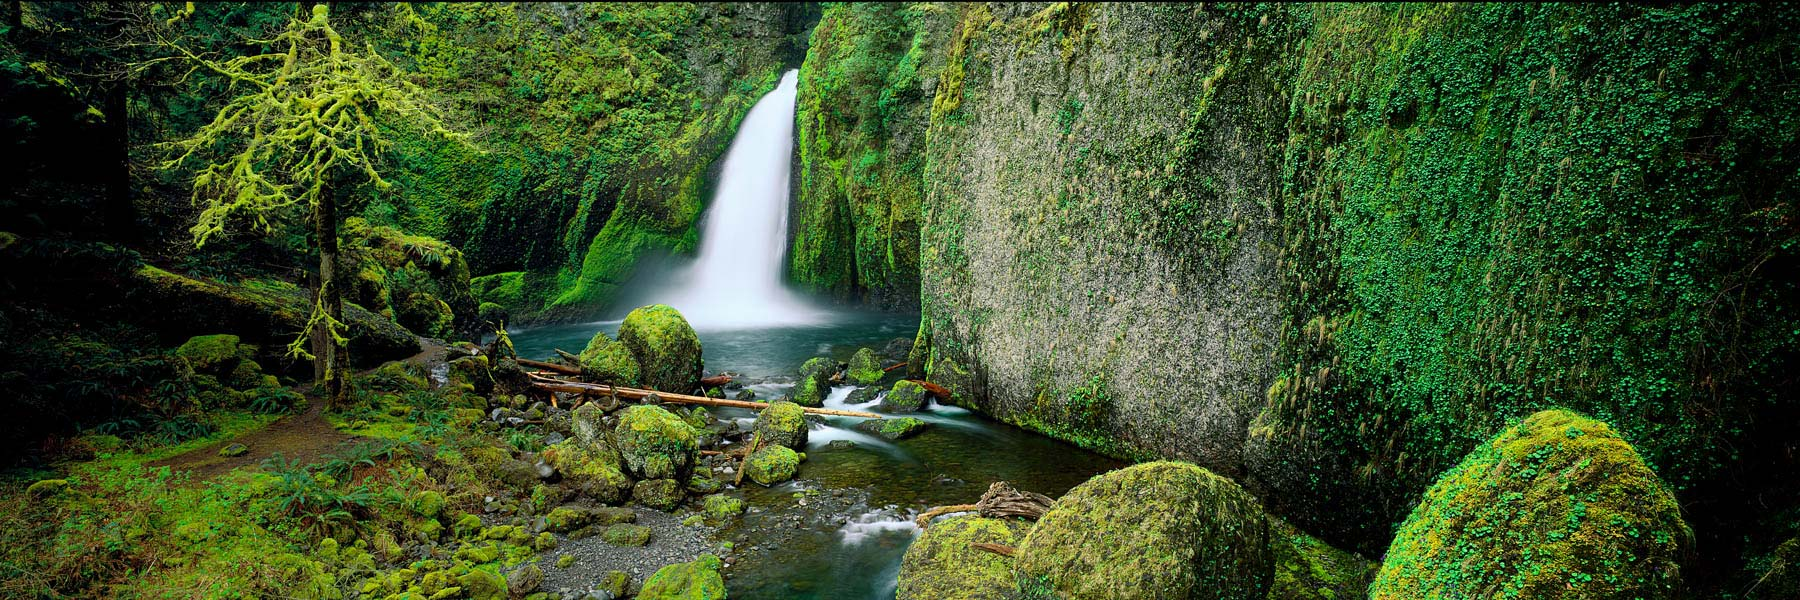 Wahclella Falls flowing over moss-covered rocks, Columbia Wilderness, Oeregon, USA.